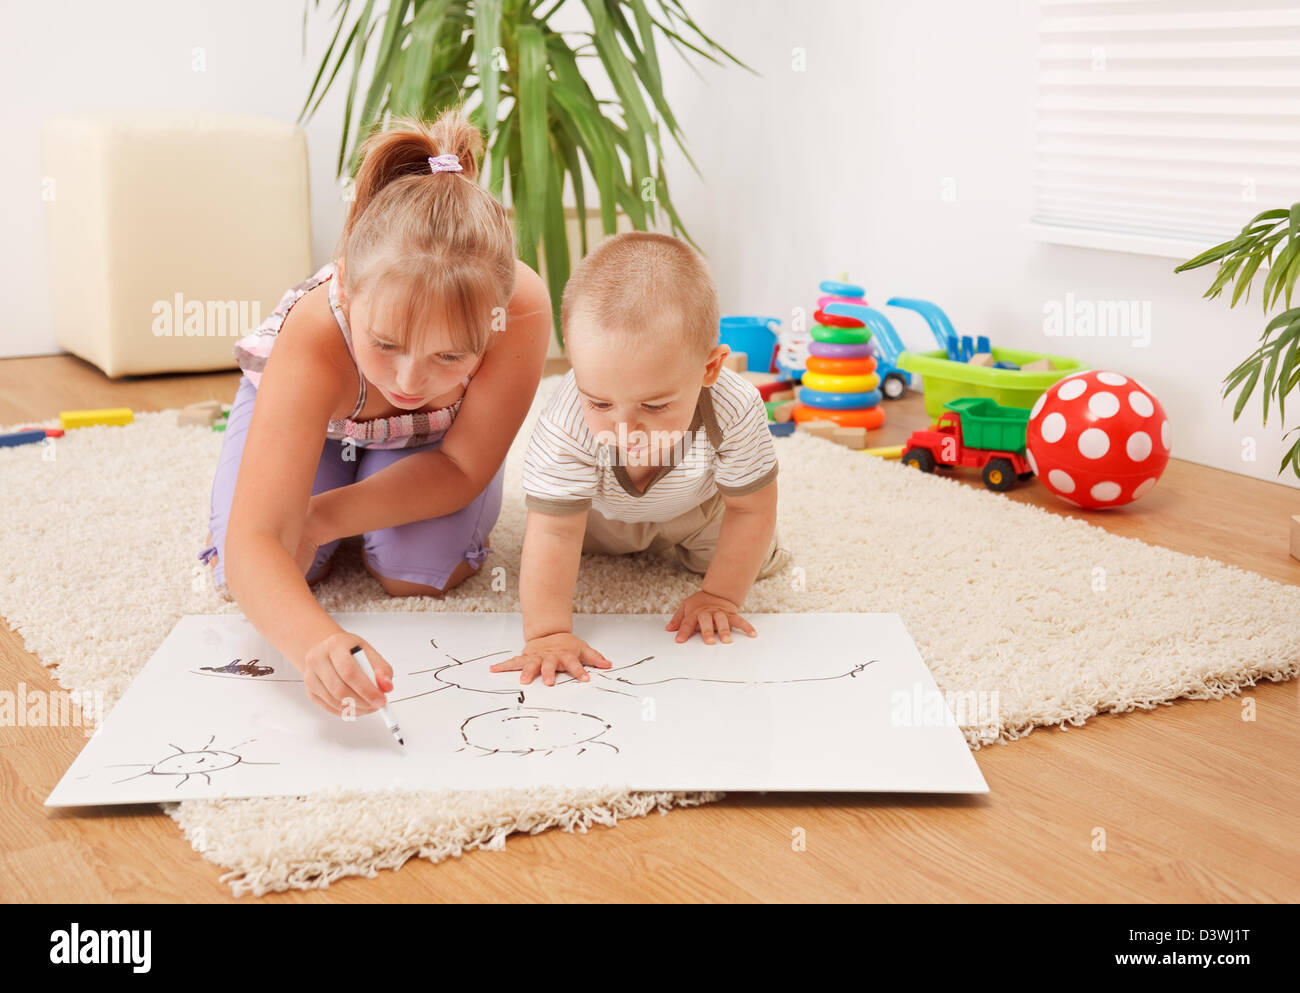 Brother watching his sister drawing on white sheet in the room - Stock Image